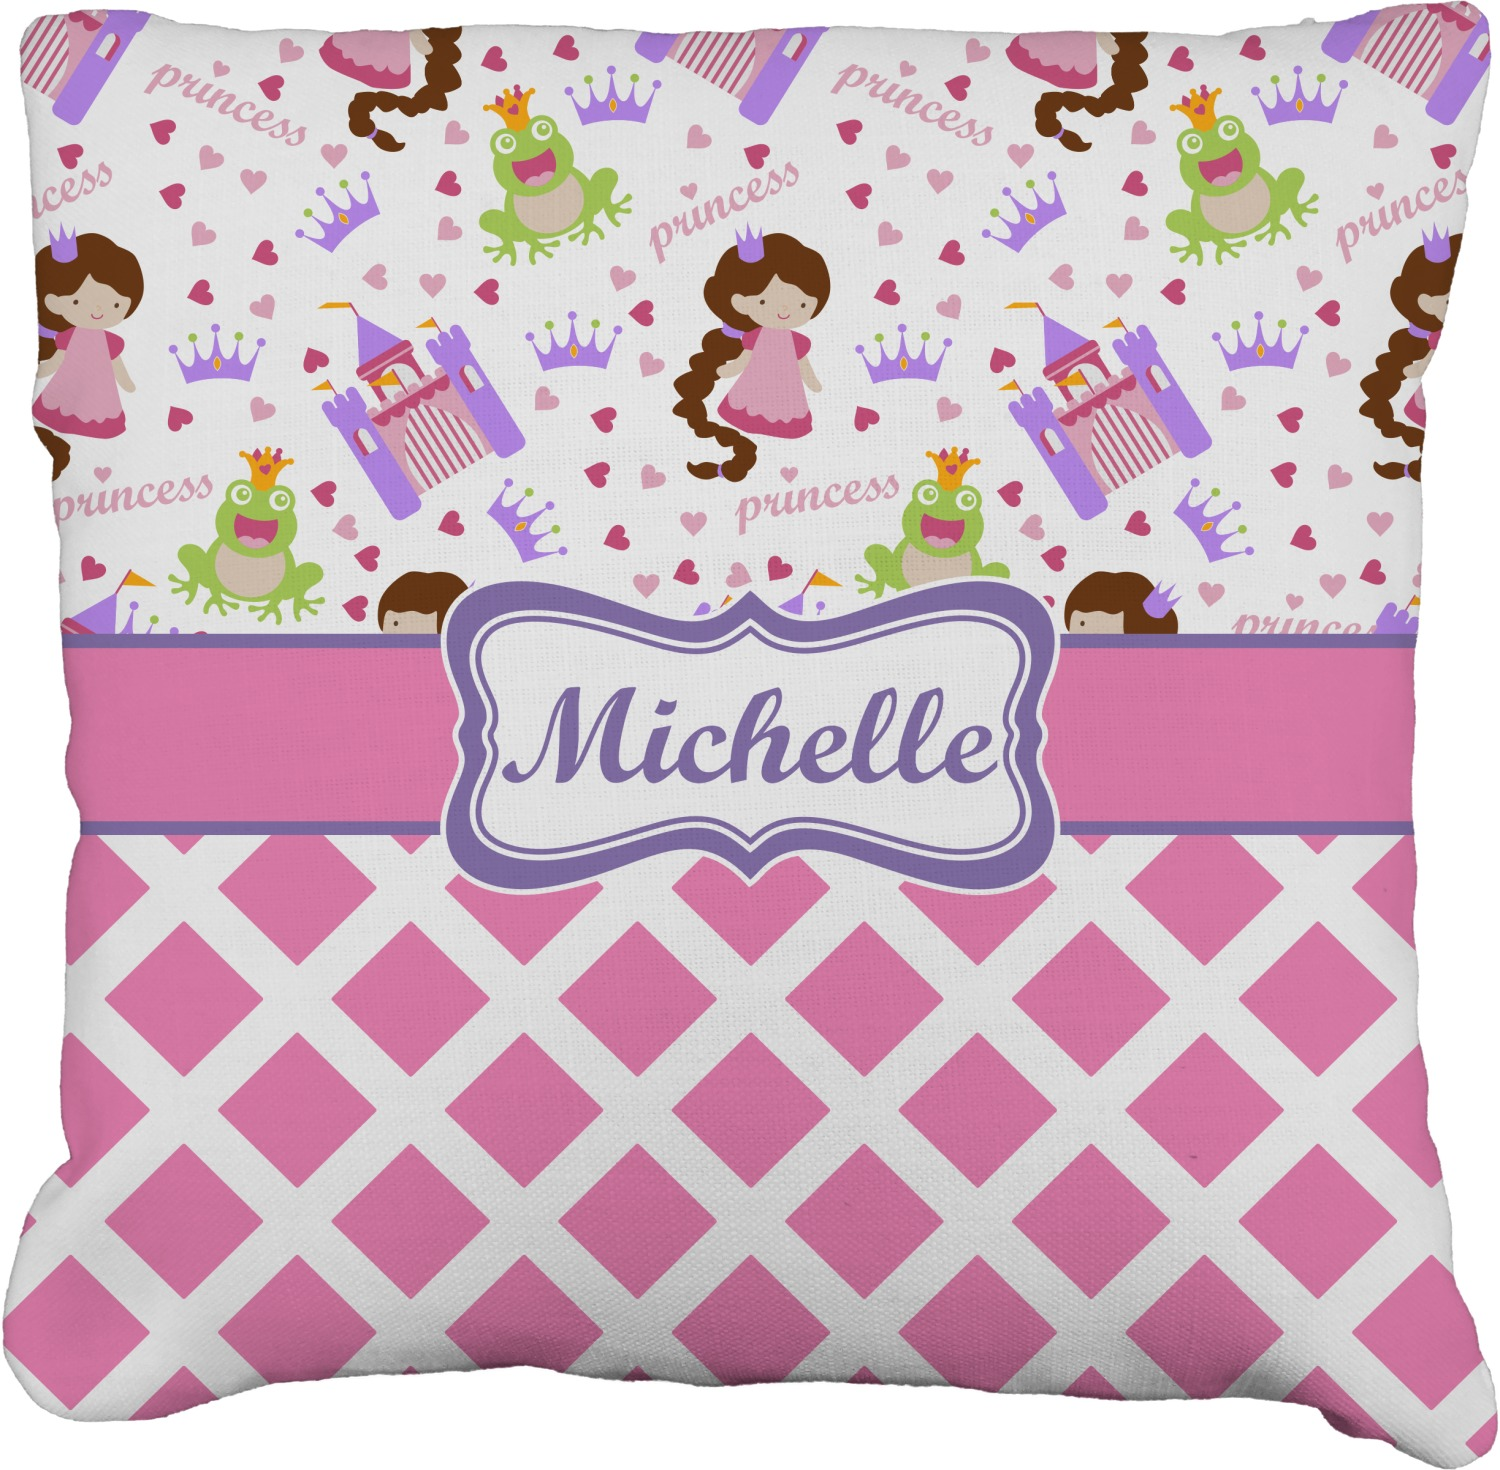 personalized sequin mermaid pillow pillows gold product llama gift rose changing